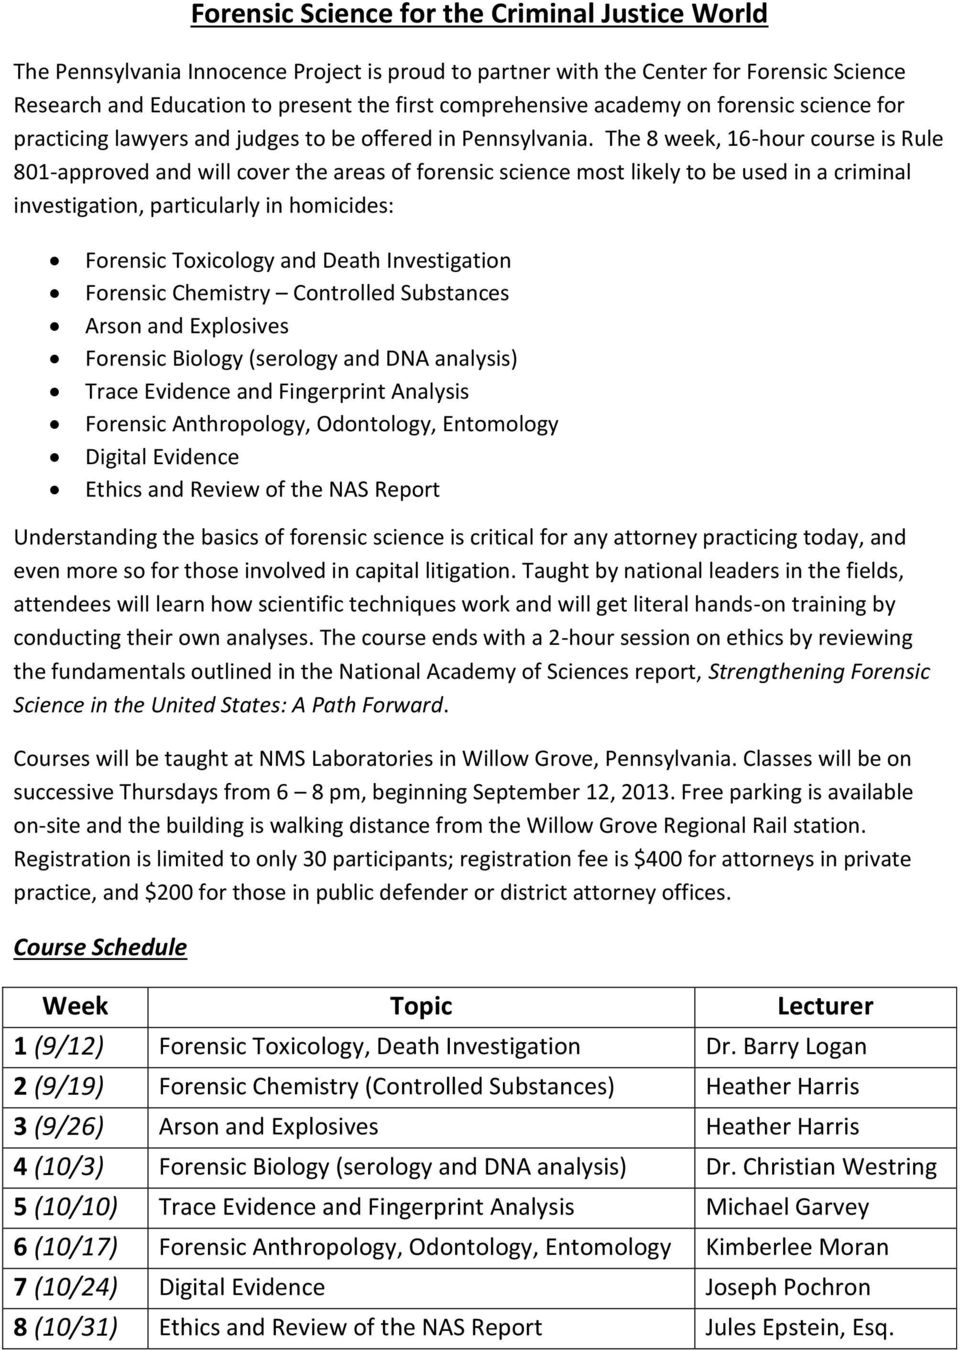 The 8 week, 16-hour course is Rule 801-approved and will cover the areas of forensic science most likely to be used in a criminal investigation, particularly in homicides: Forensic Toxicology and